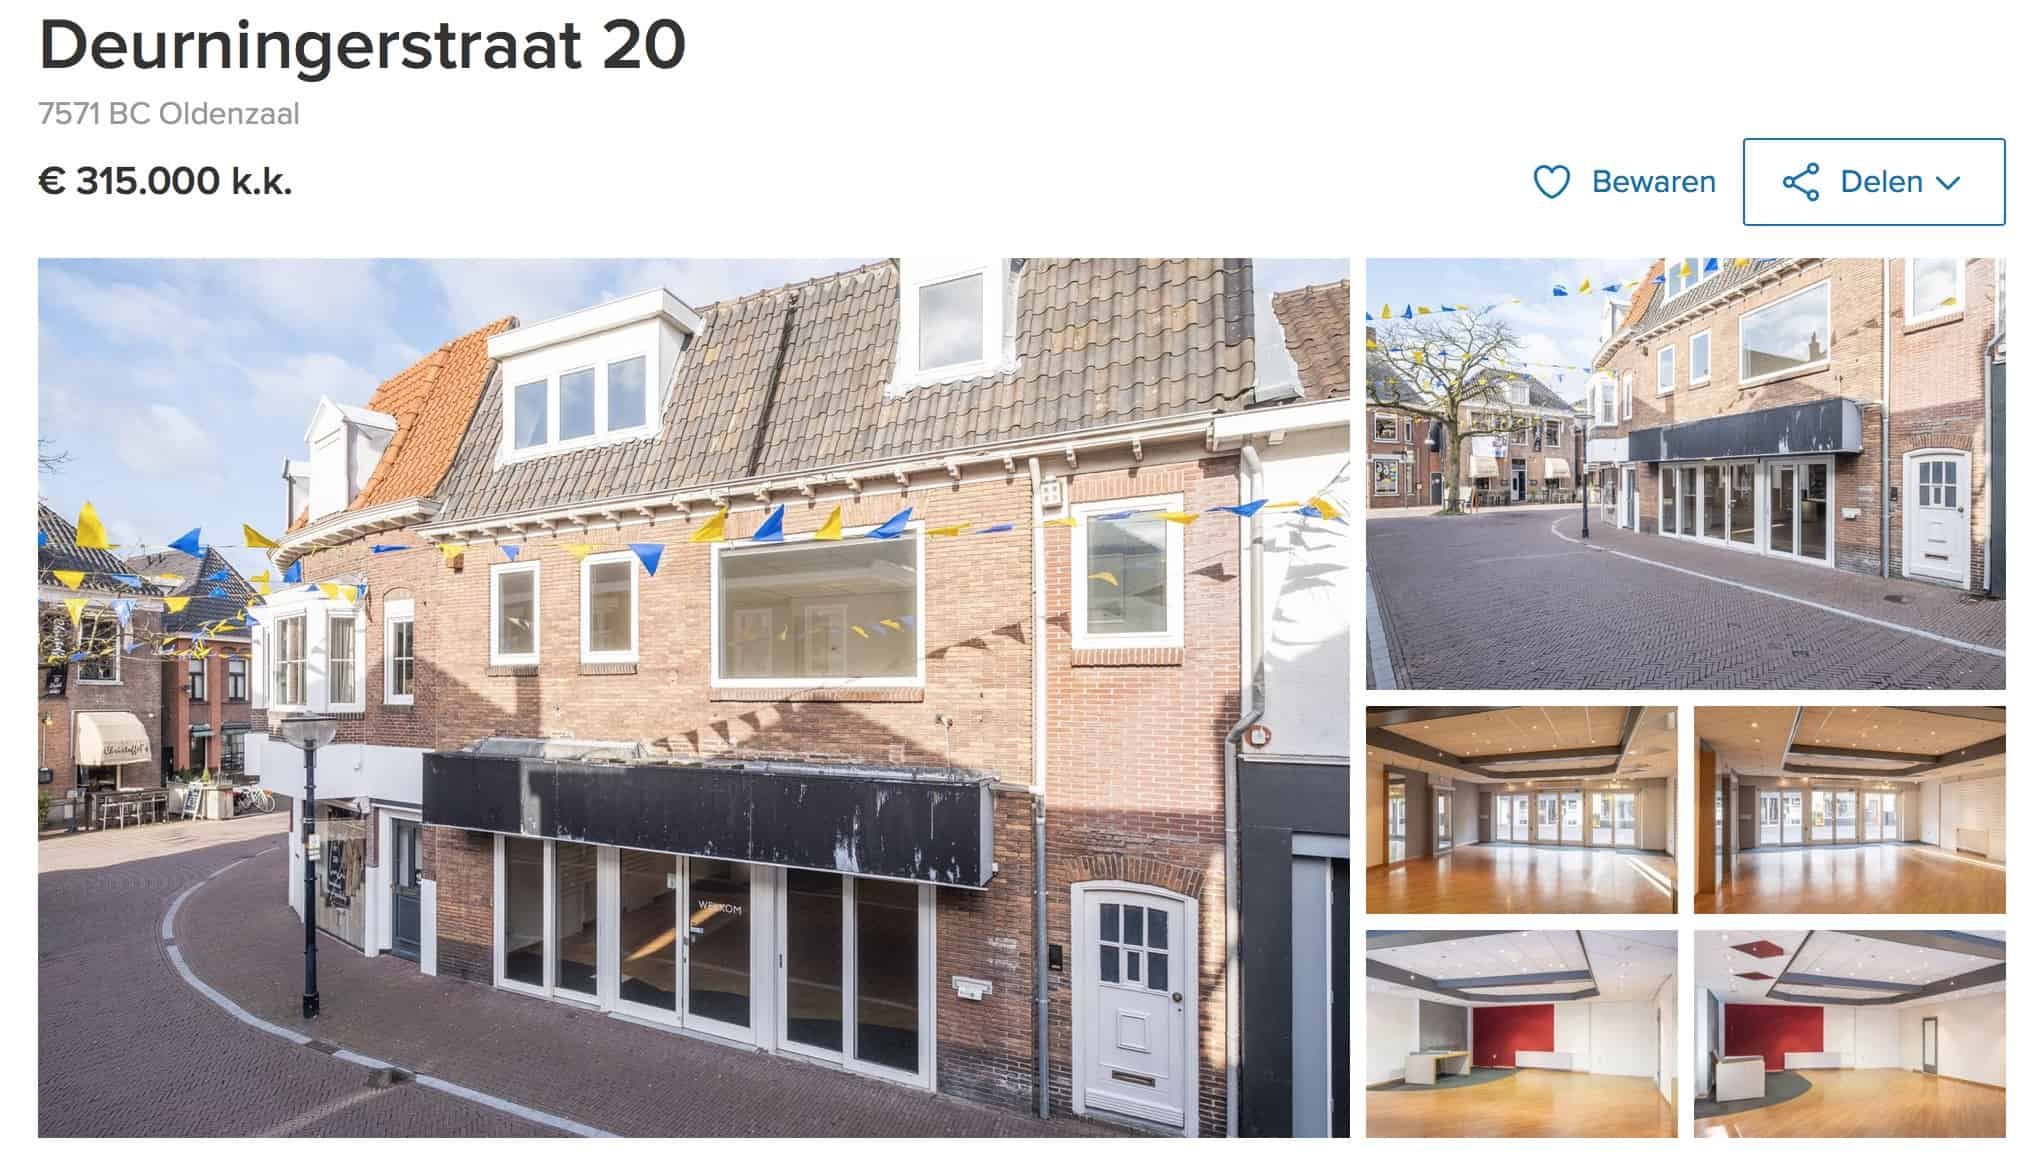 Downtown Oldenzaal for sale: a shop downstairs and a 4-room apartment upstairs.